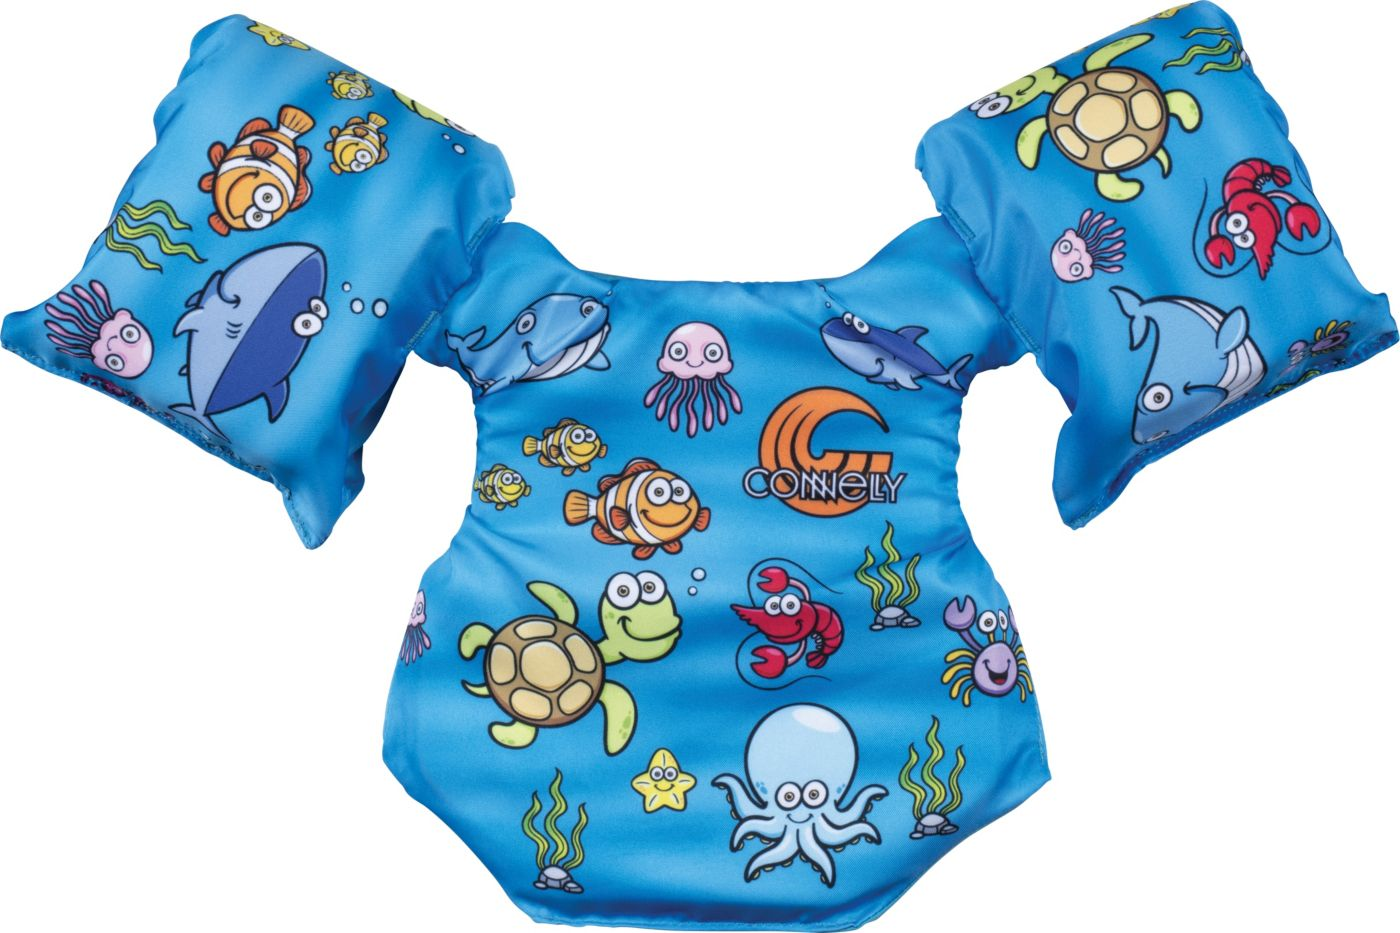 Connelly Little Dippers Nylon Life Vest